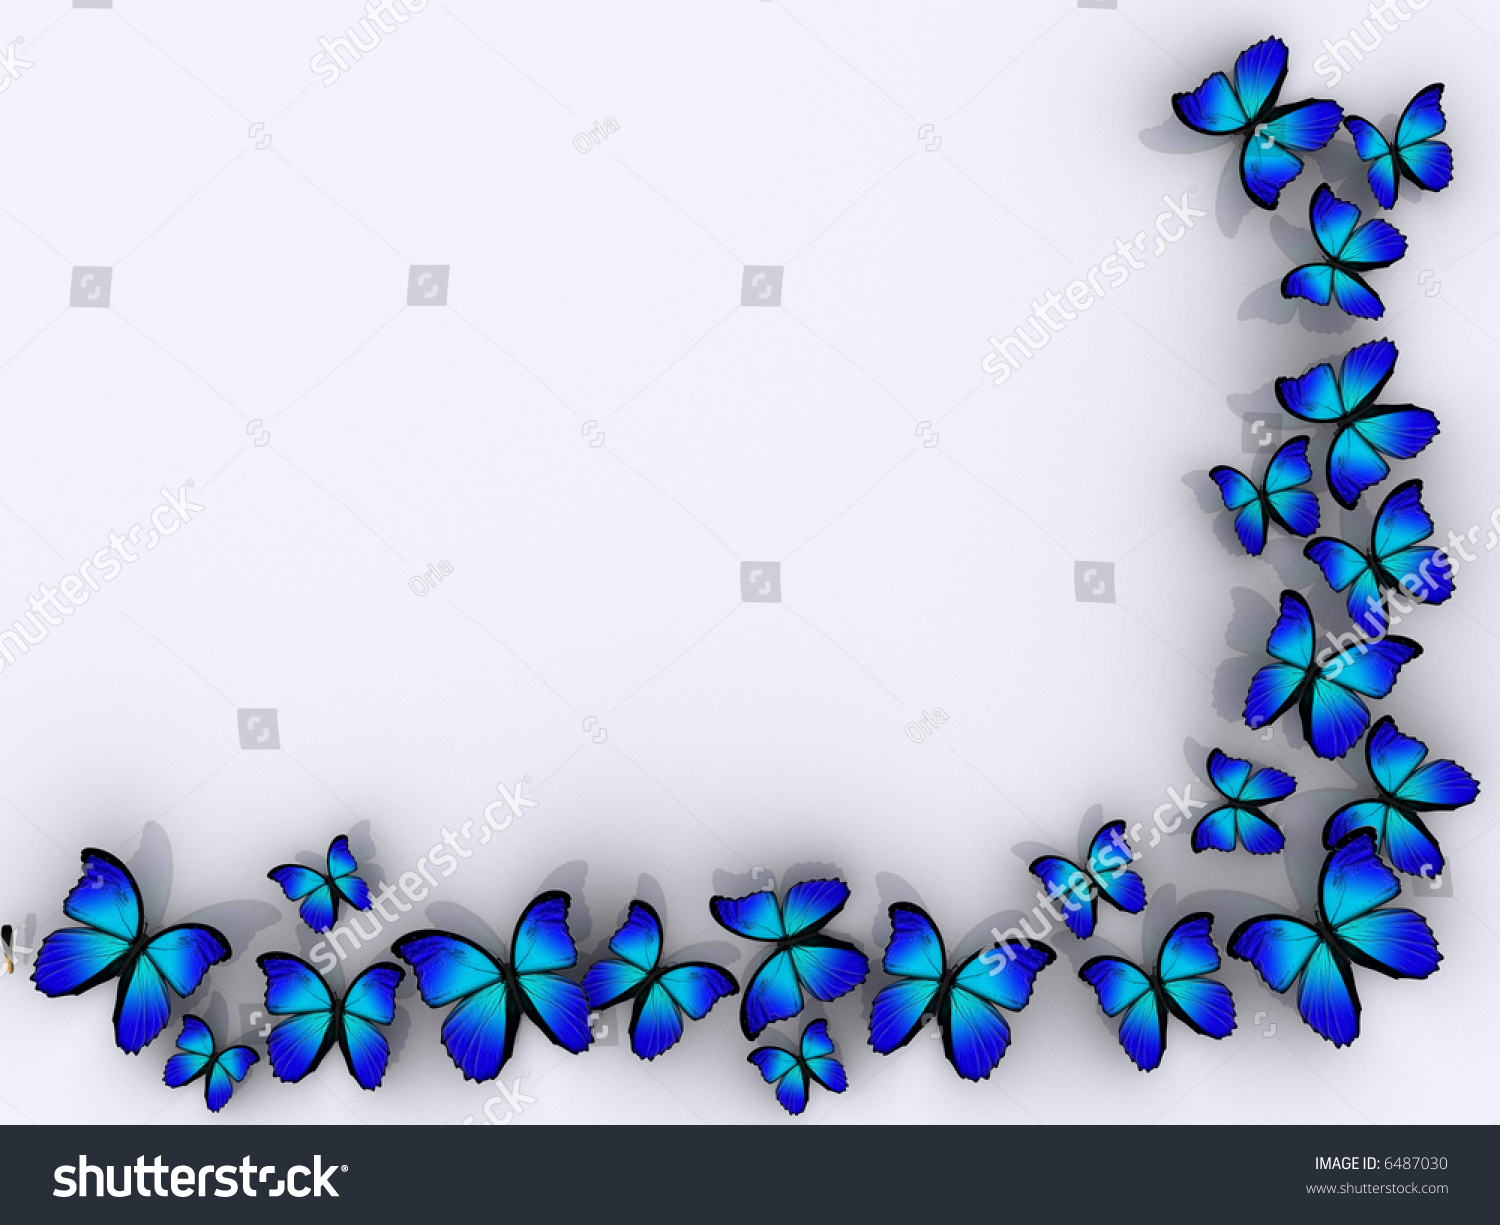 butterfly frame on white background rendered in 3d